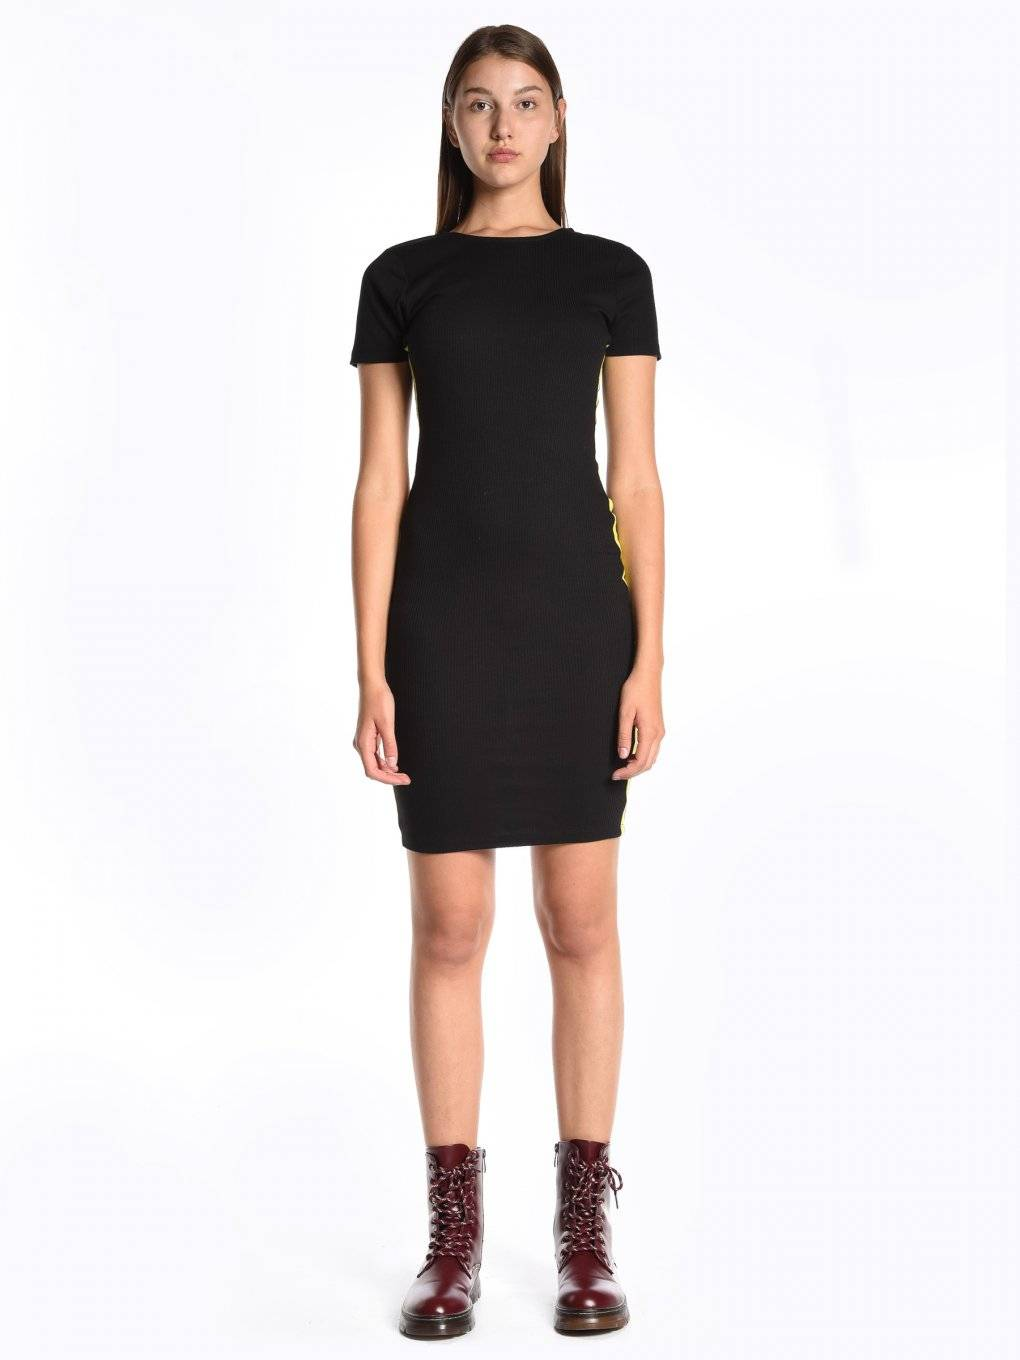 Bodycon dress with contrast side stripe